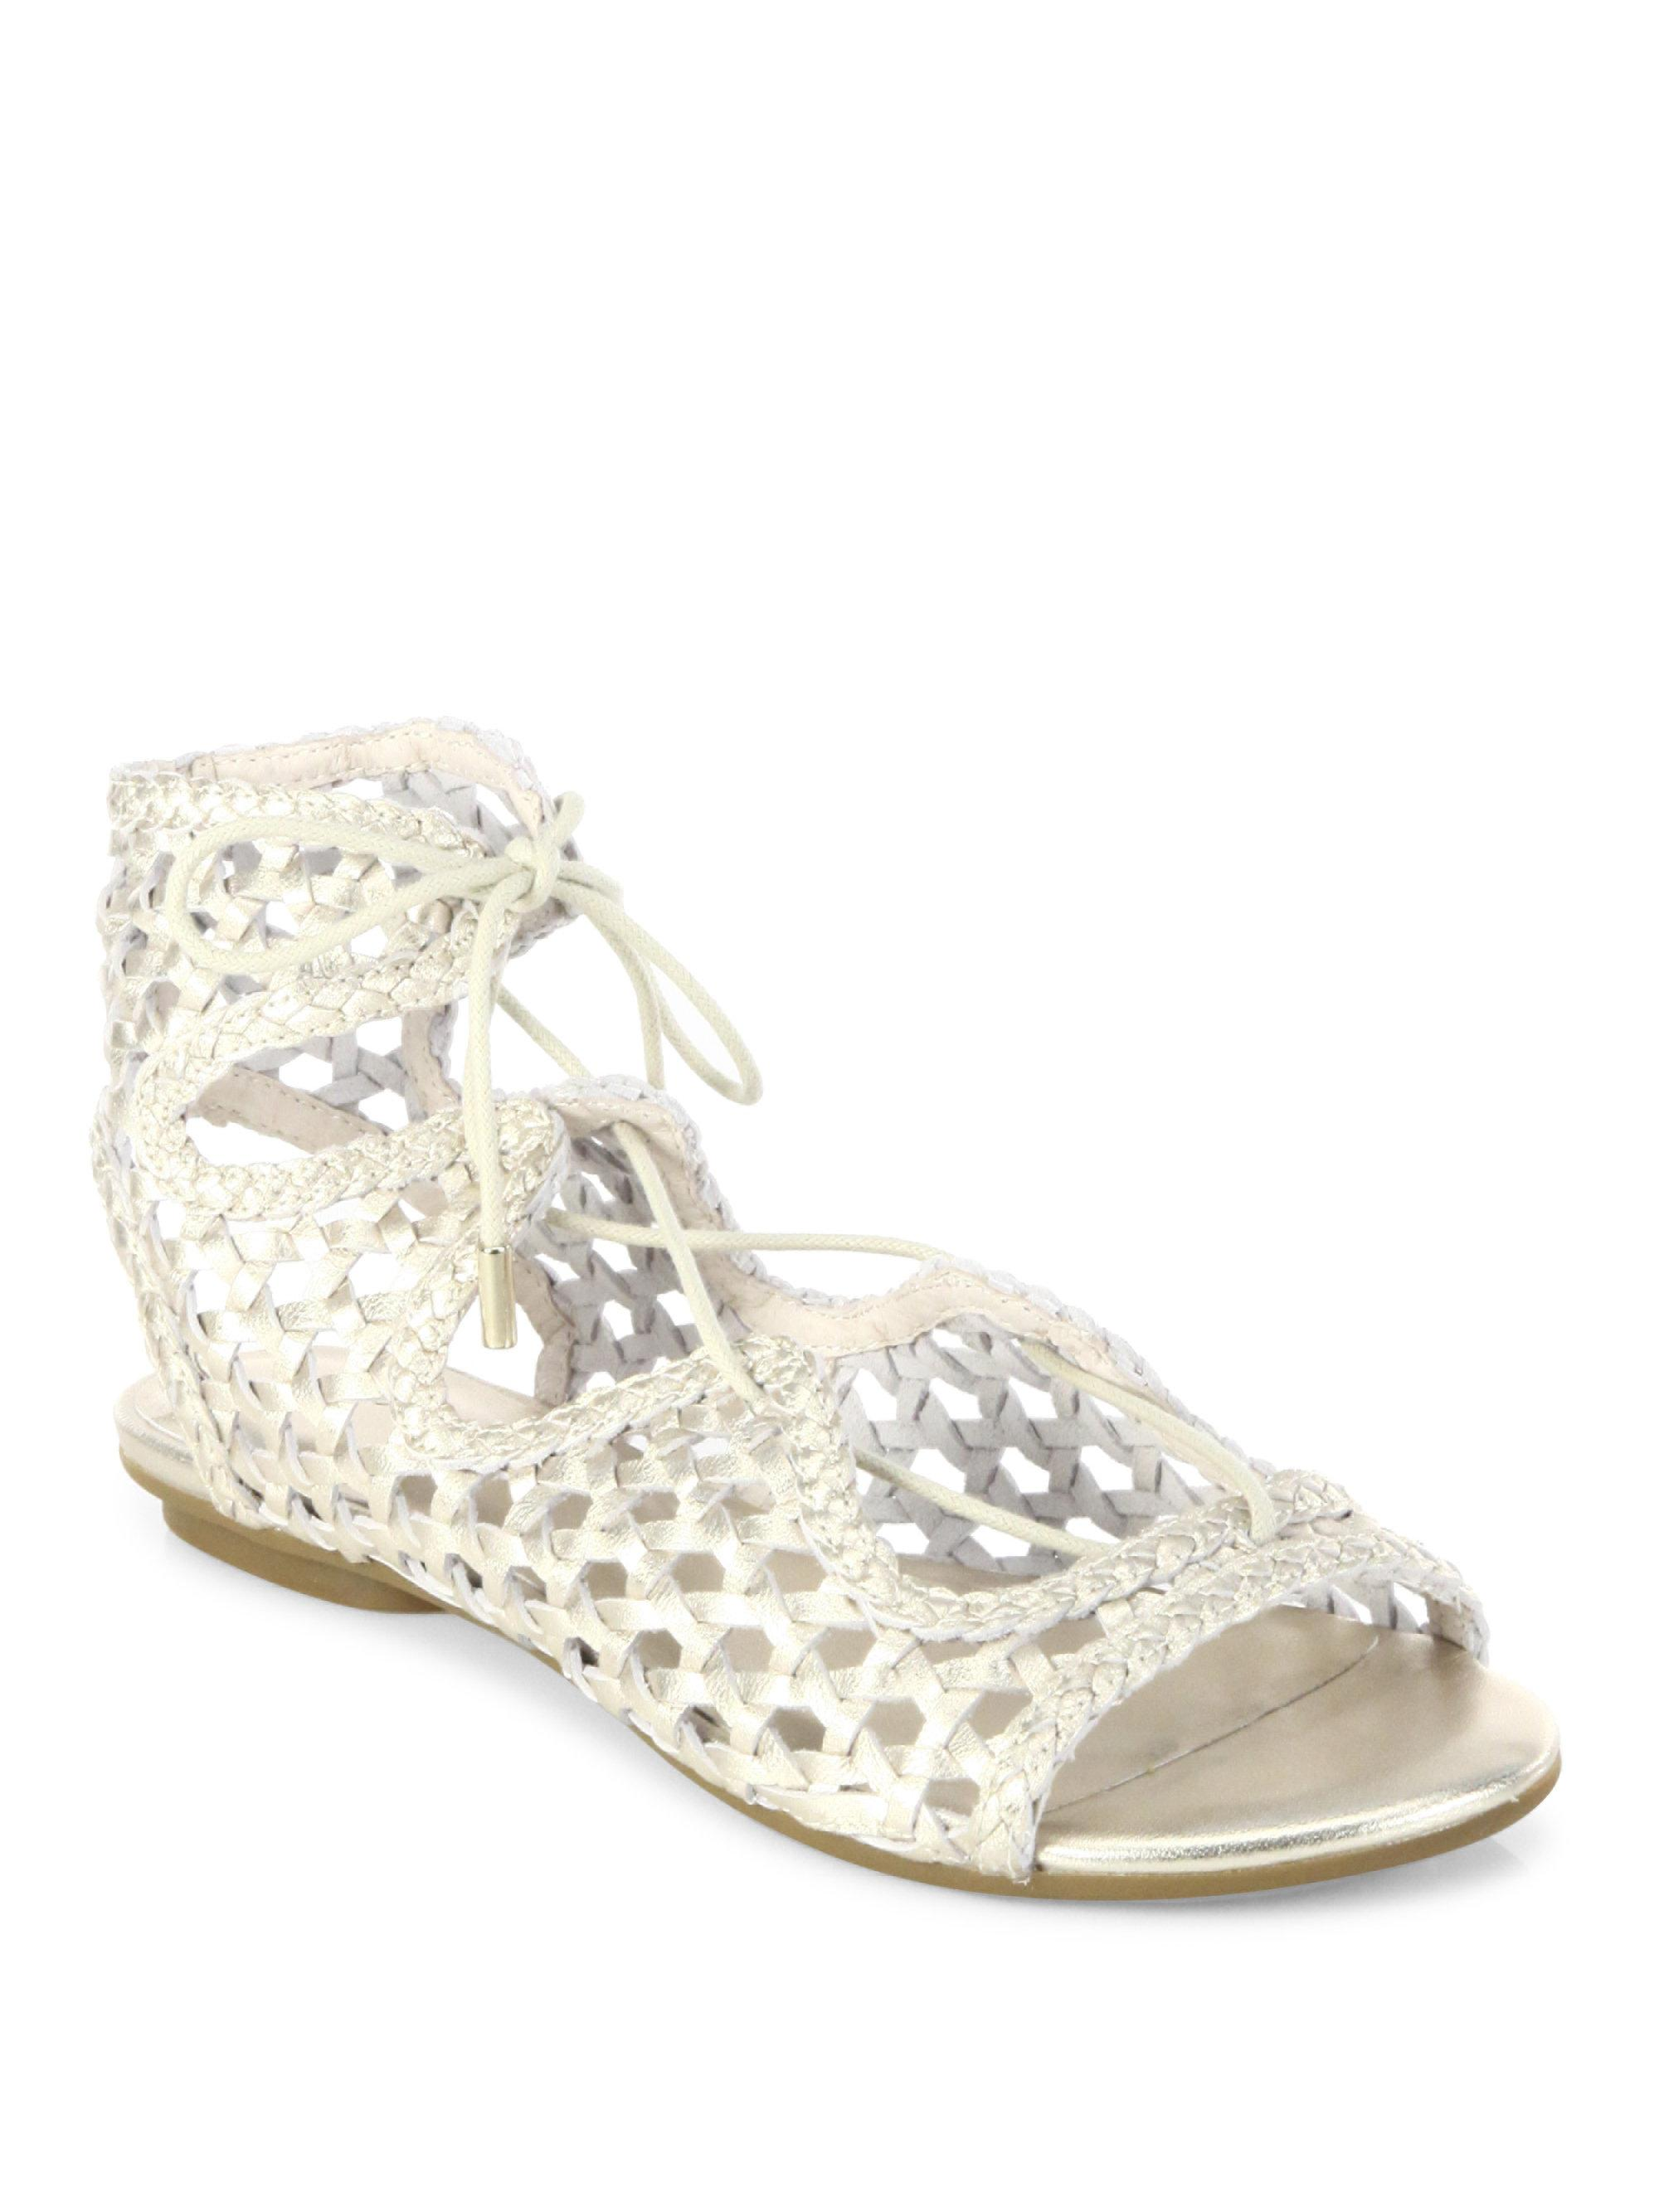 Joie Fannie Woven Metallic Leather Lace-Up Sandals XrFkpyw